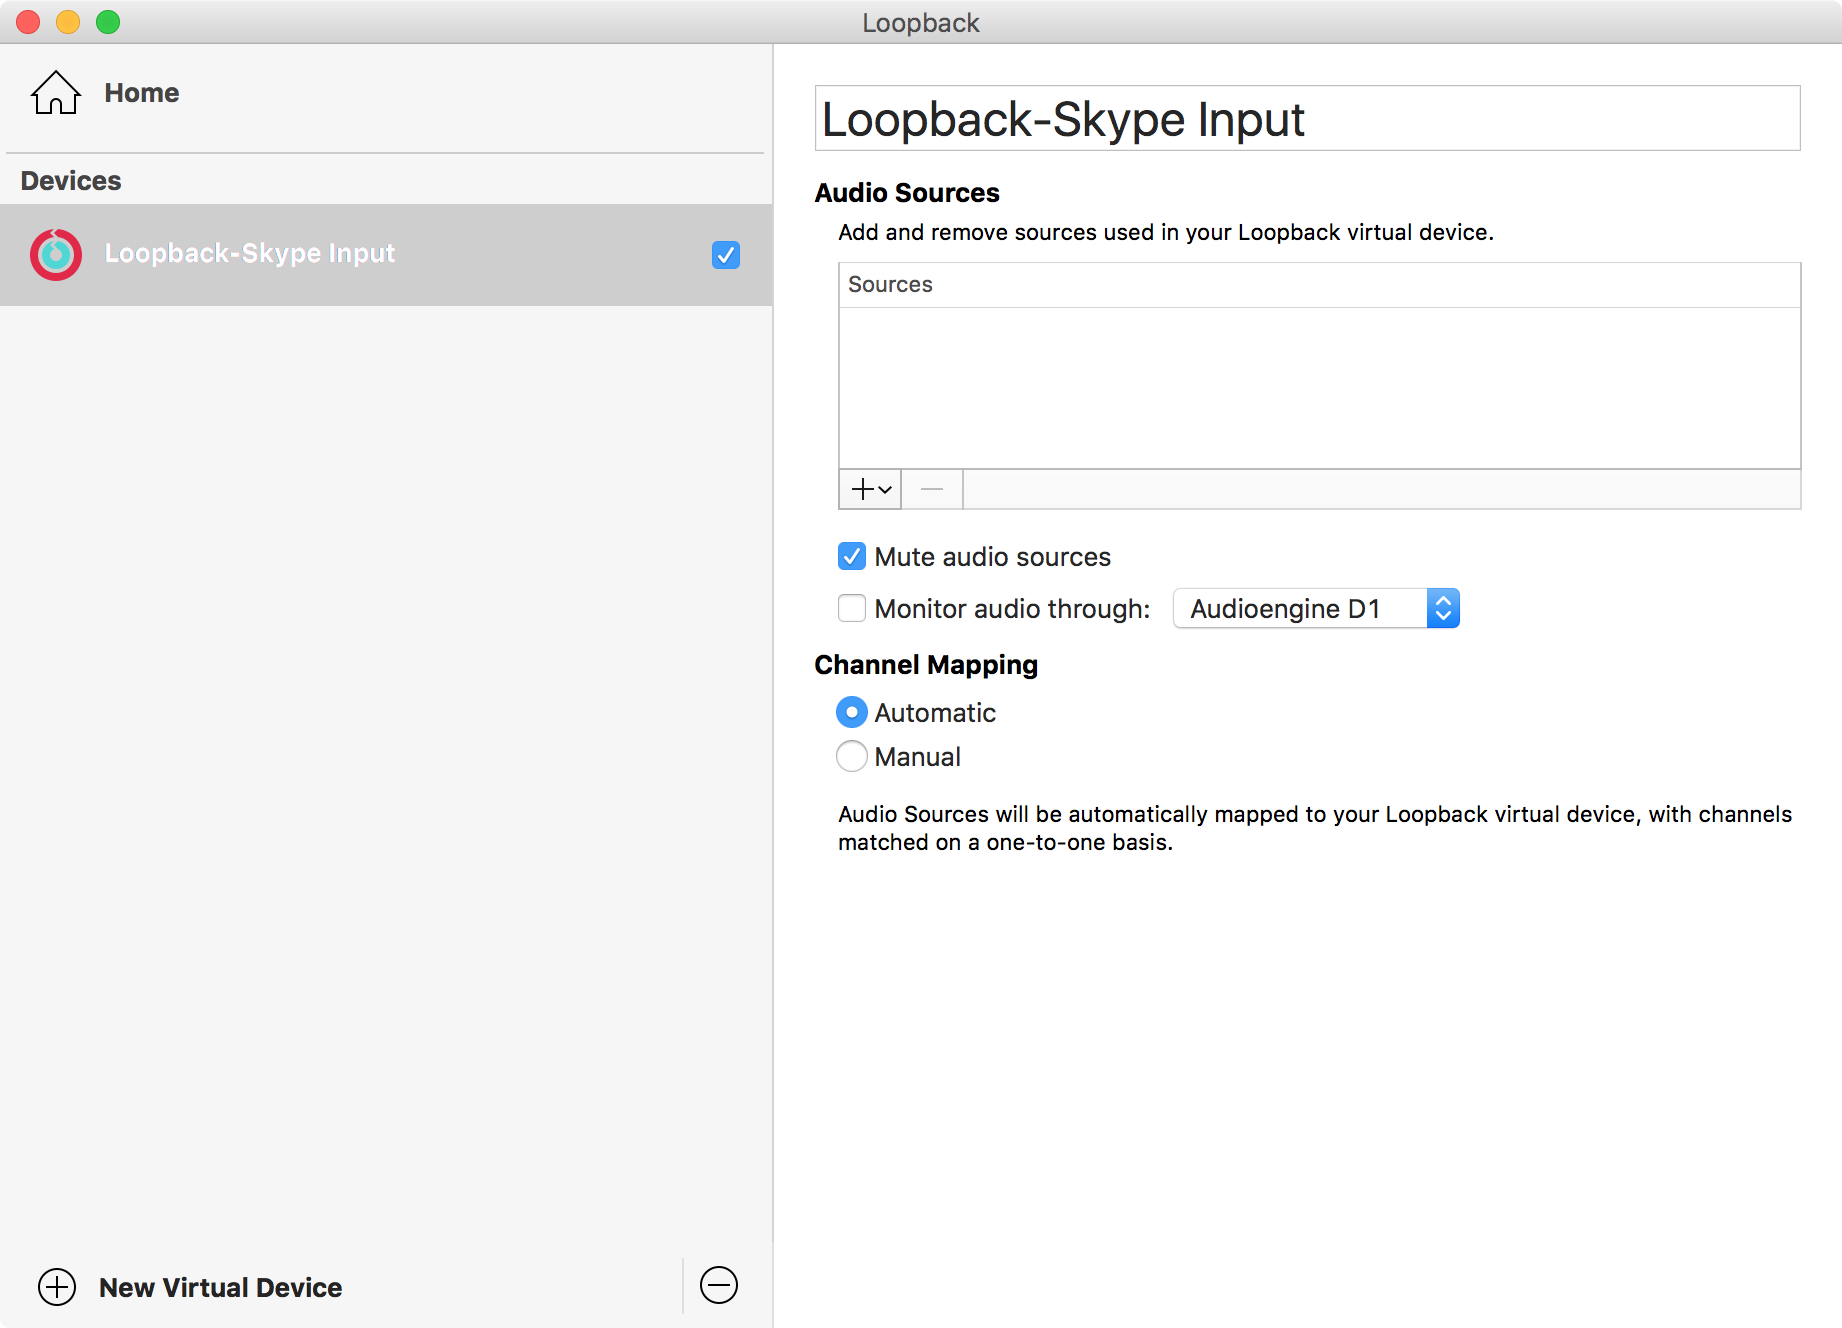 How to Use Loopback with Skype so Podcast Guests Hear Your